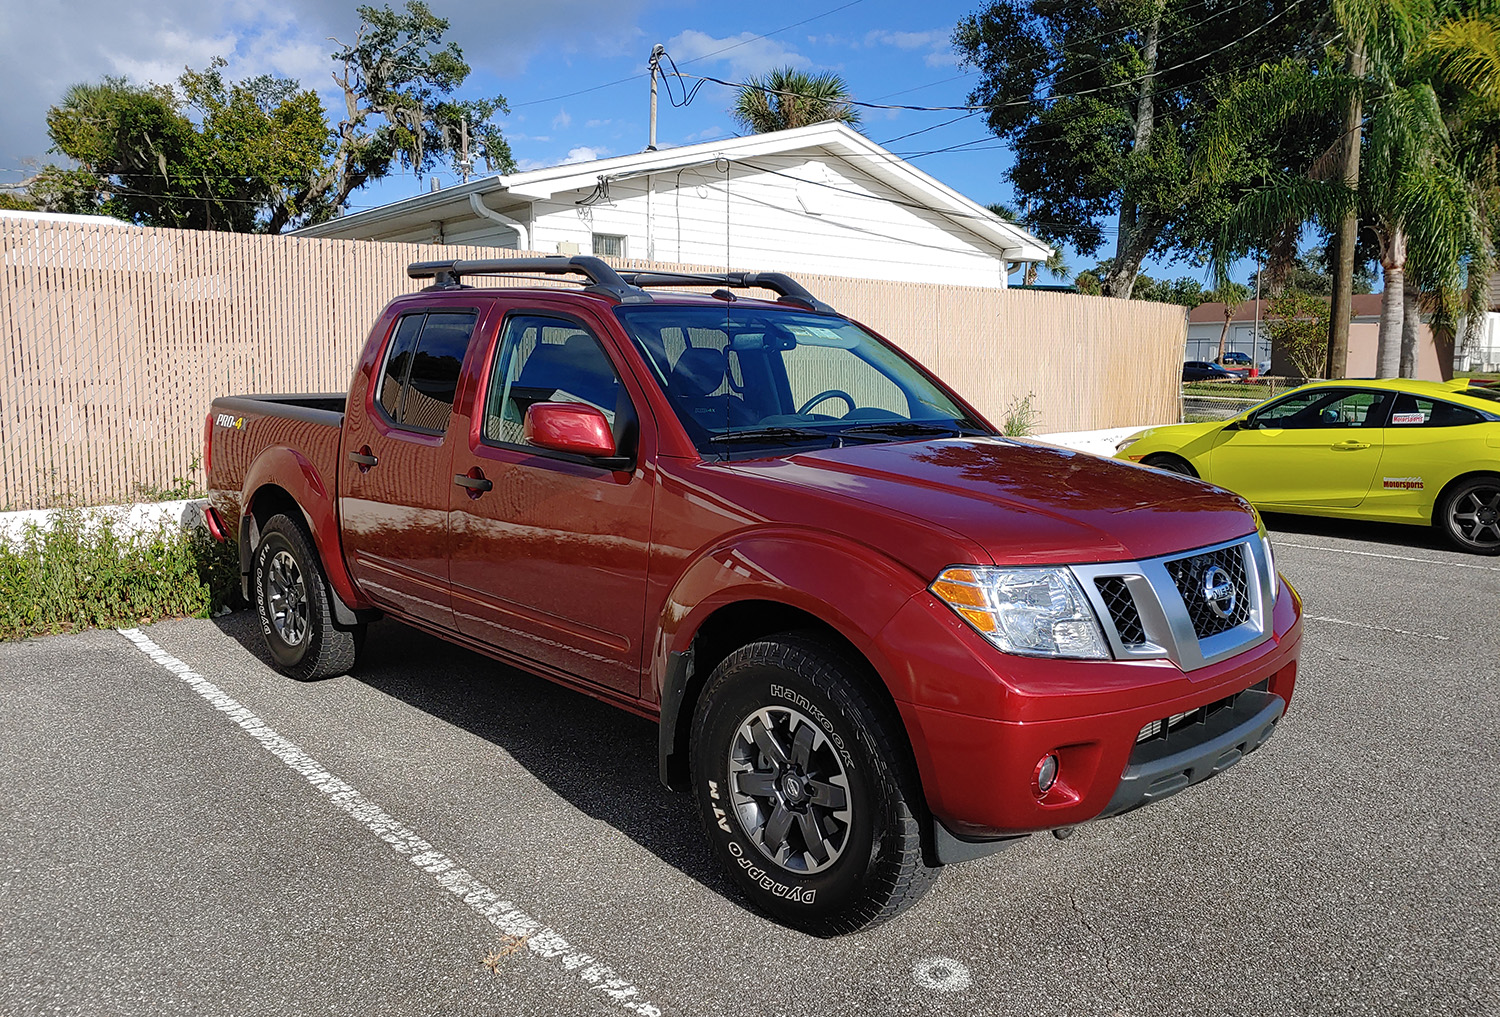 2019 Nissan Frontier Pro 4x Crew Cab 4x4 Automatic V6 New Car Reviews Grassroots Motorsports